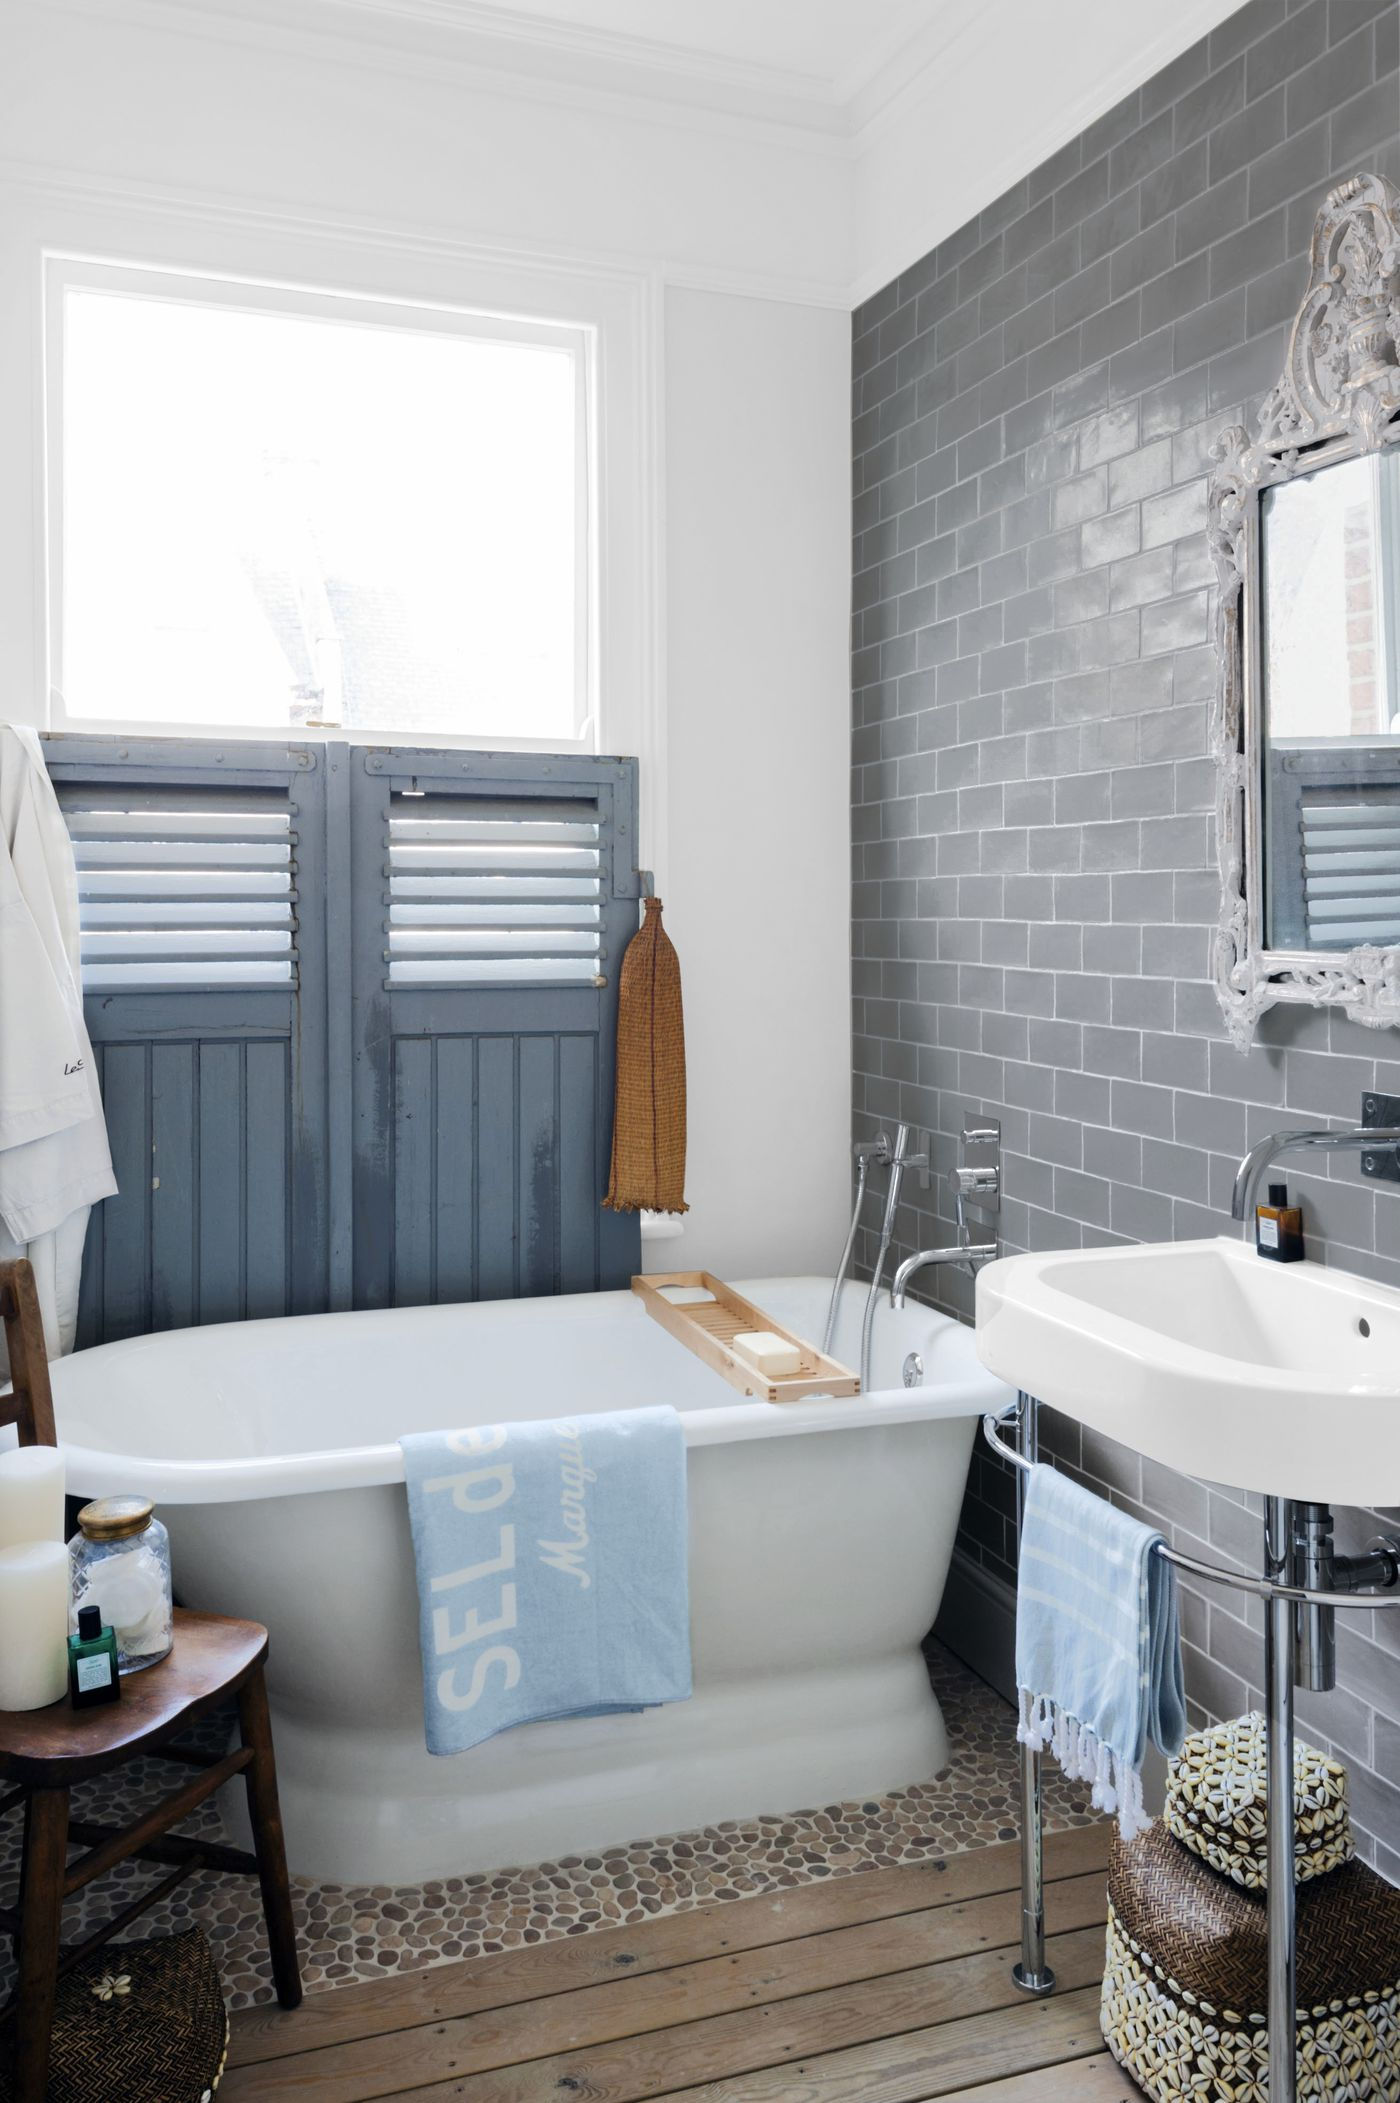 20 Budget Friendly Bath Ideas This Old House